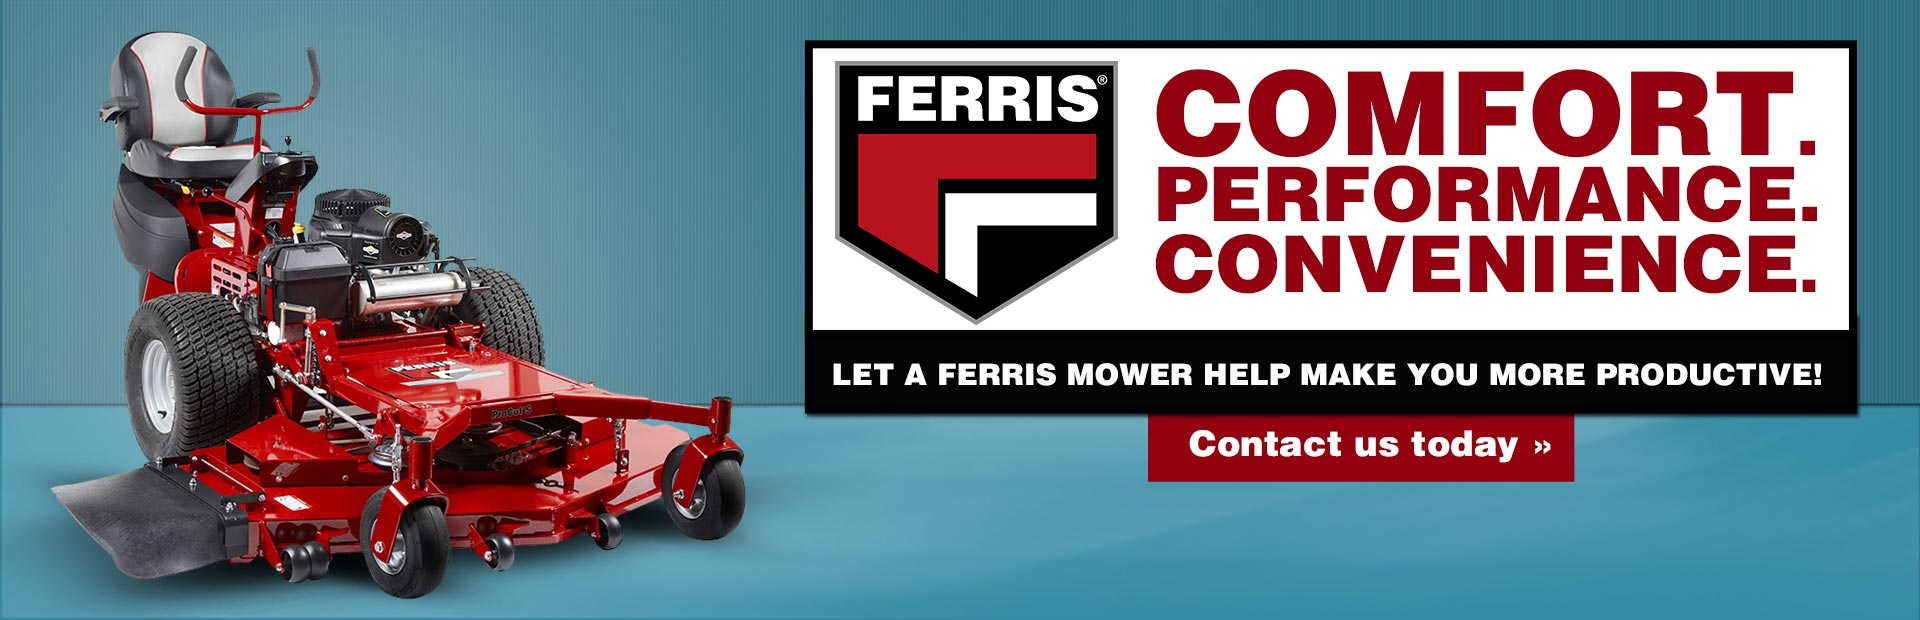 Ferris mowers offer comfort, performance, and convenience. Let a Ferris mower help make you more productive! Click here to browse online, then contact us with any questions you may have.